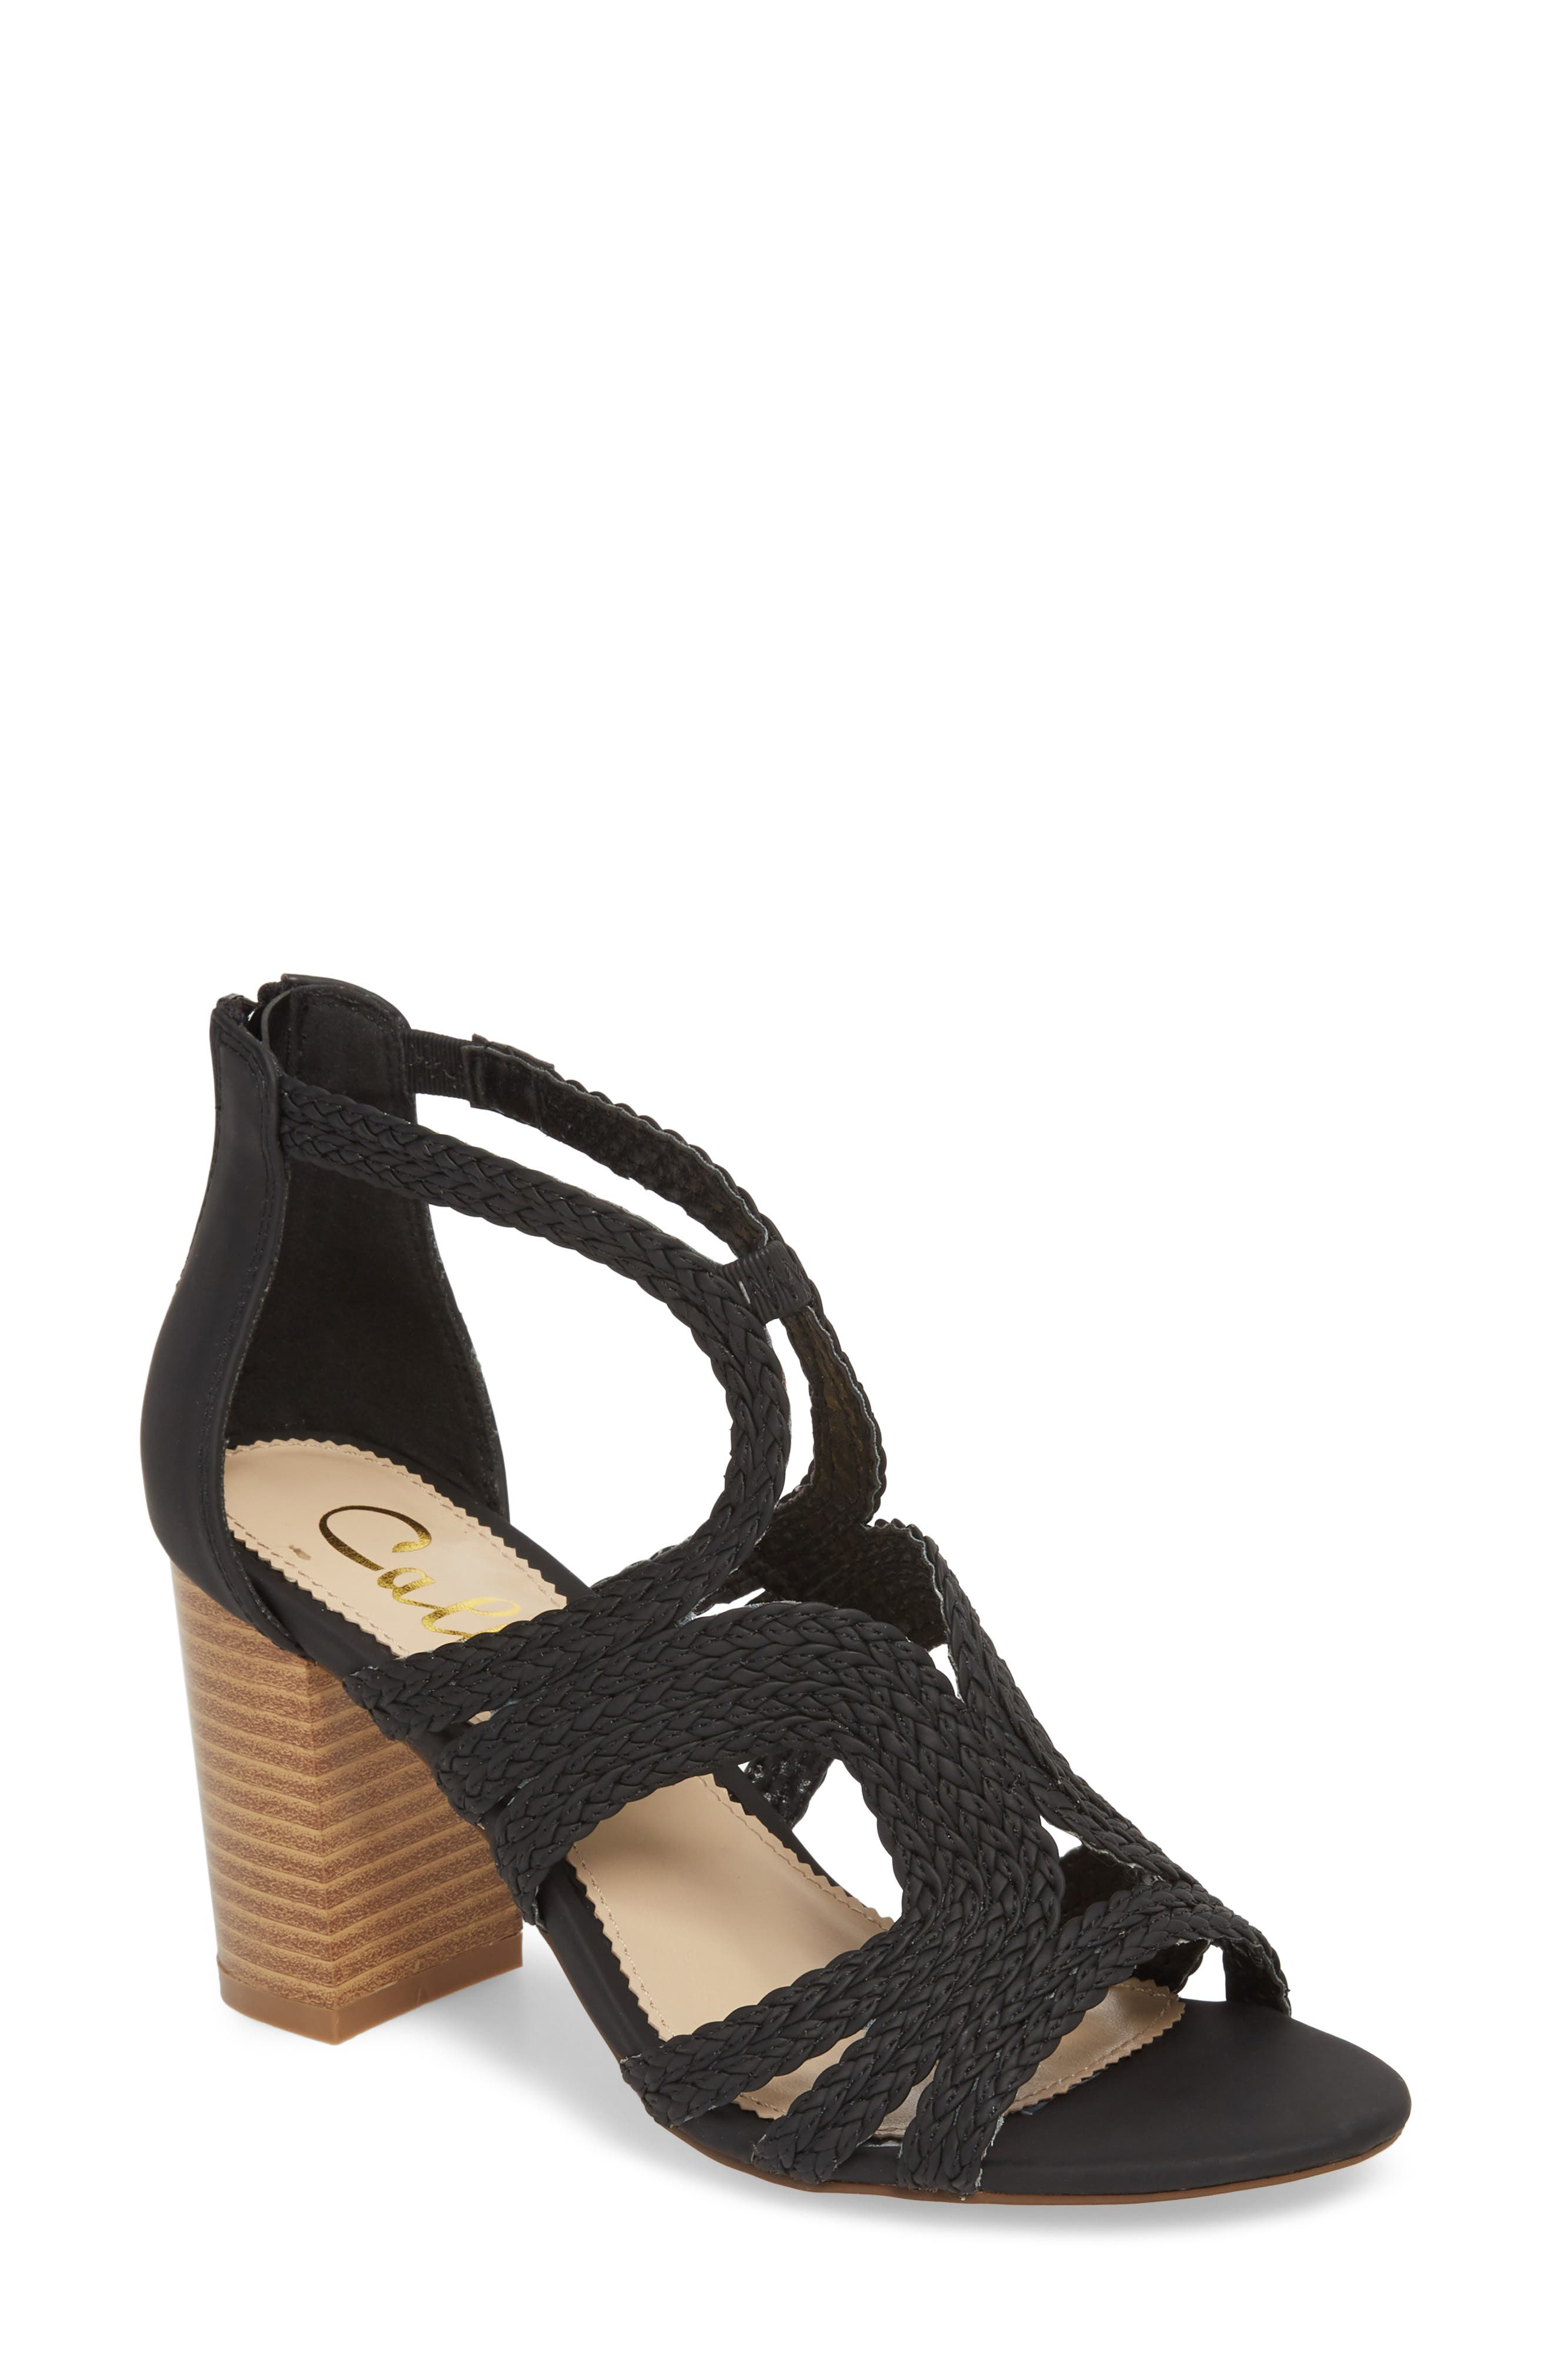 Shindig Block Heel Sandal,                             Main thumbnail 1, color,                             Black Fabric